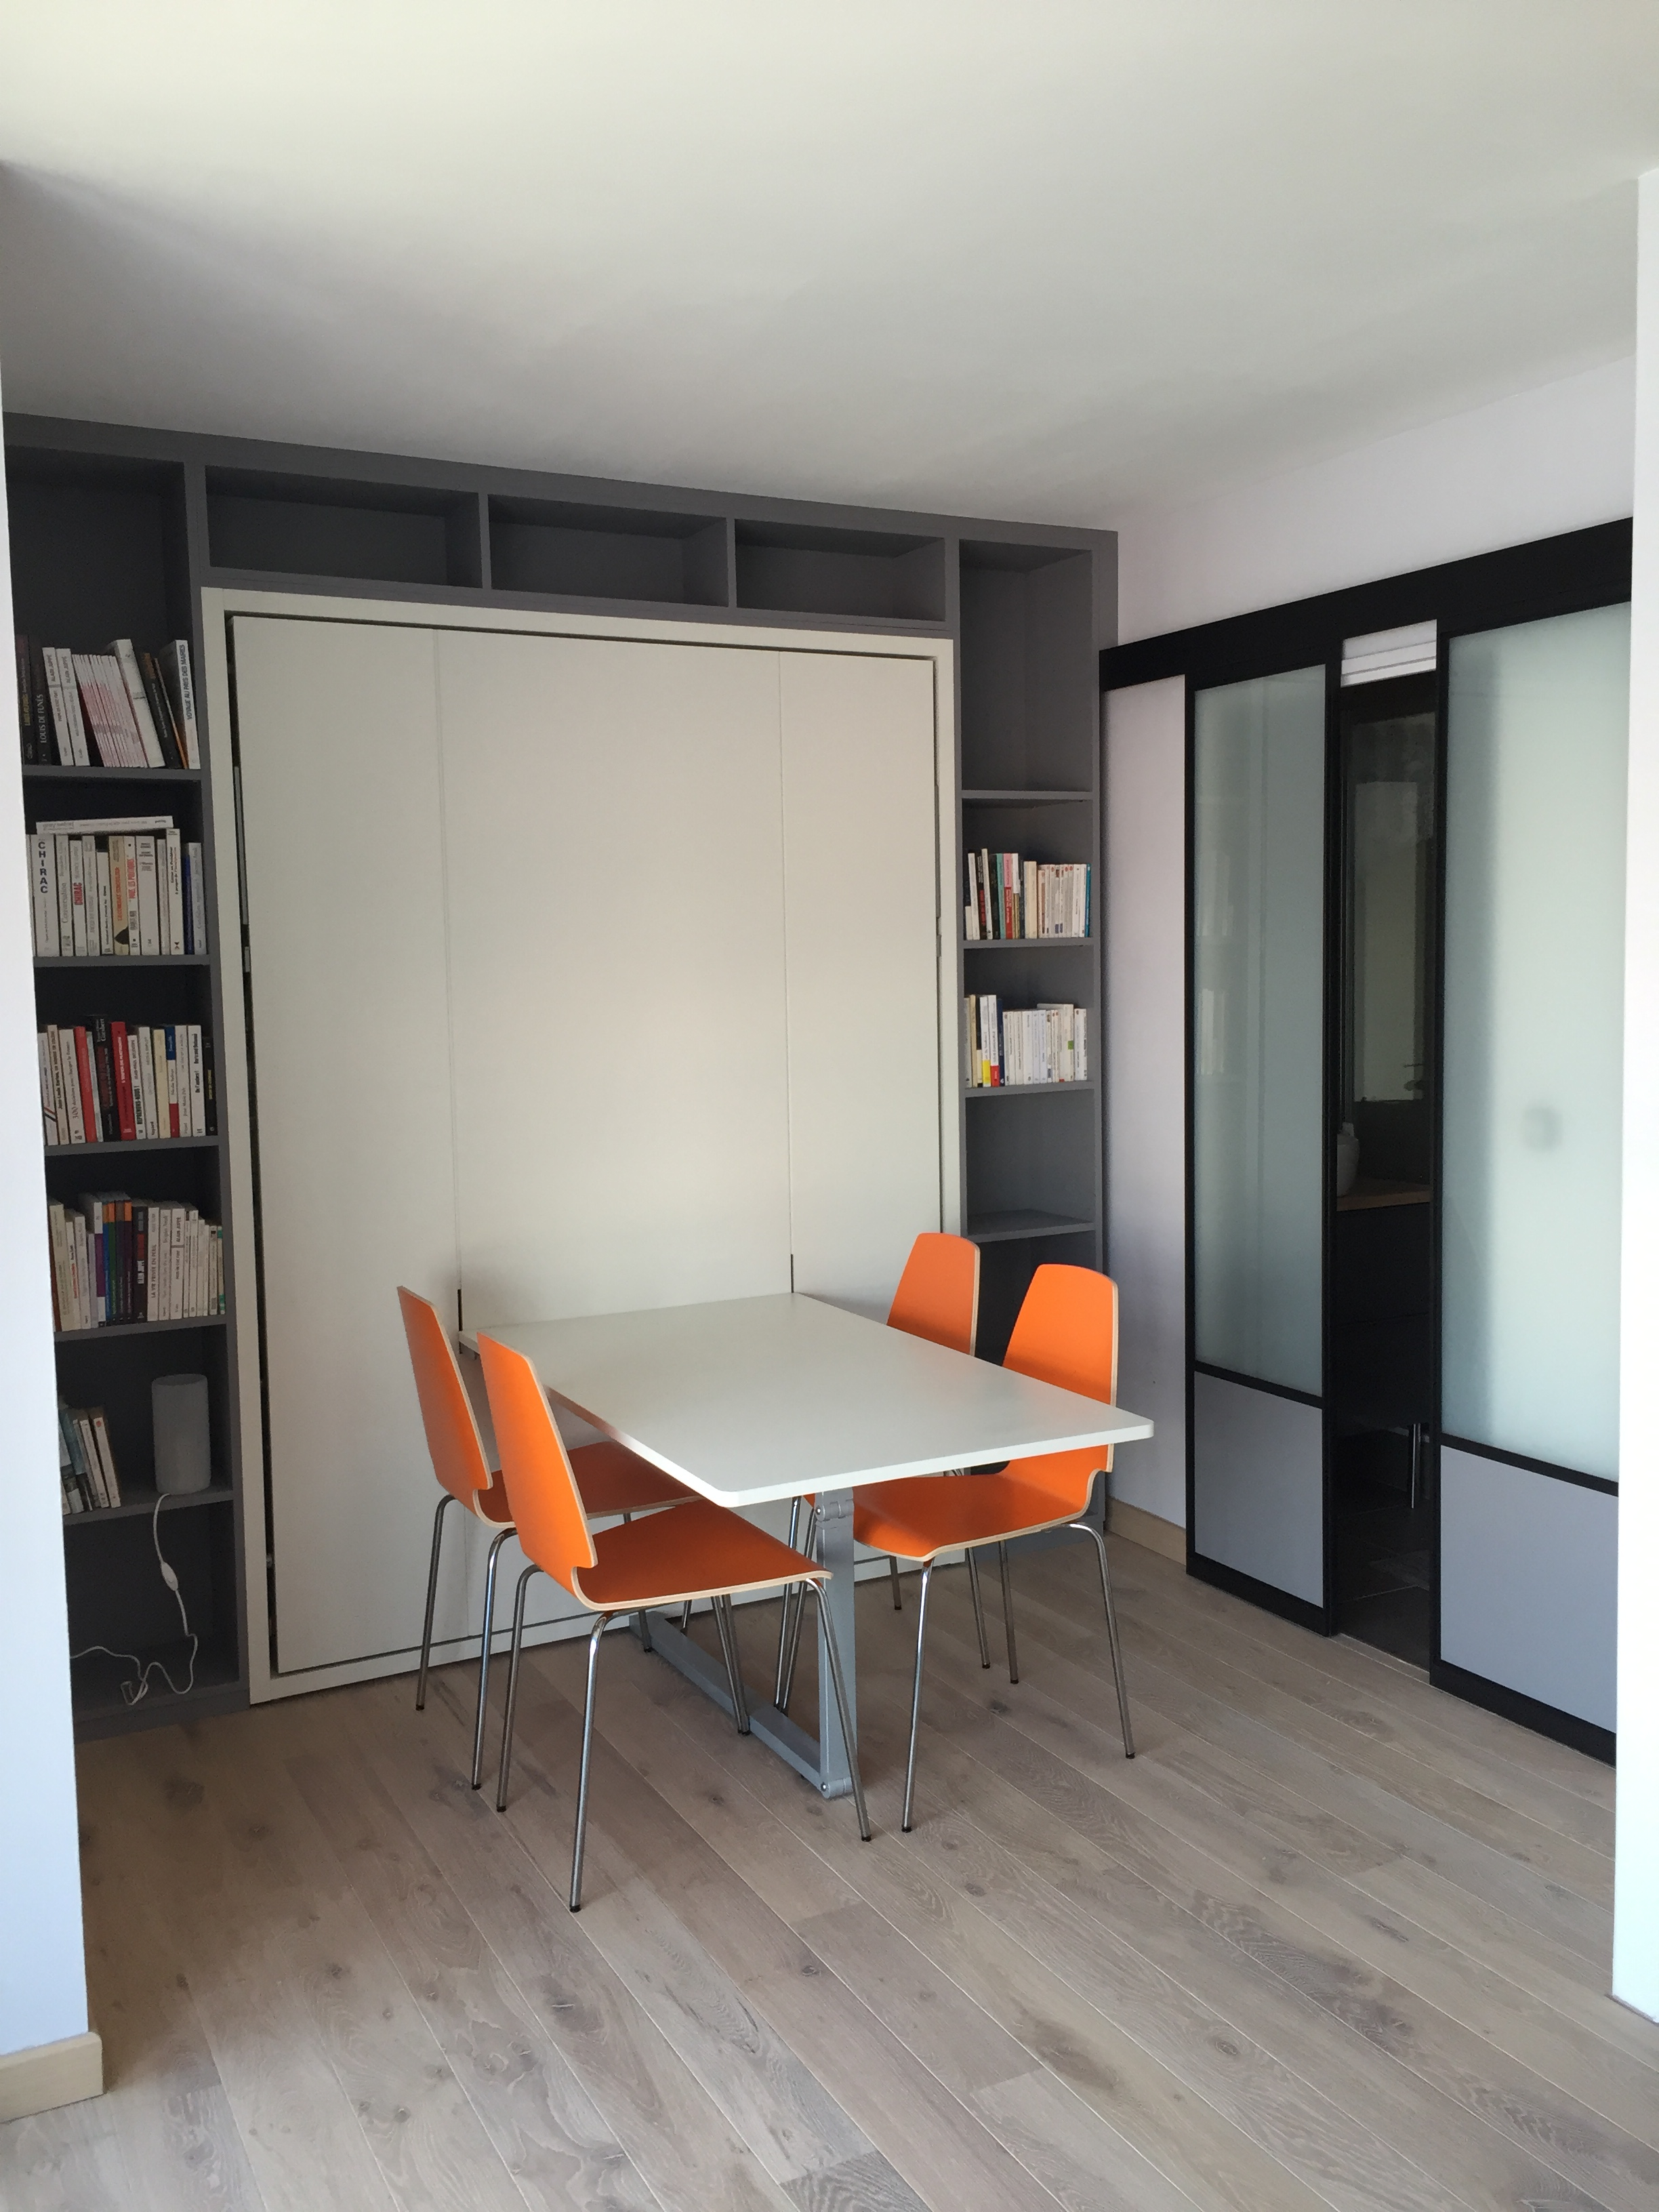 Agencement avec lit escamotable et table avec verriere for Meuble avec table escamotable